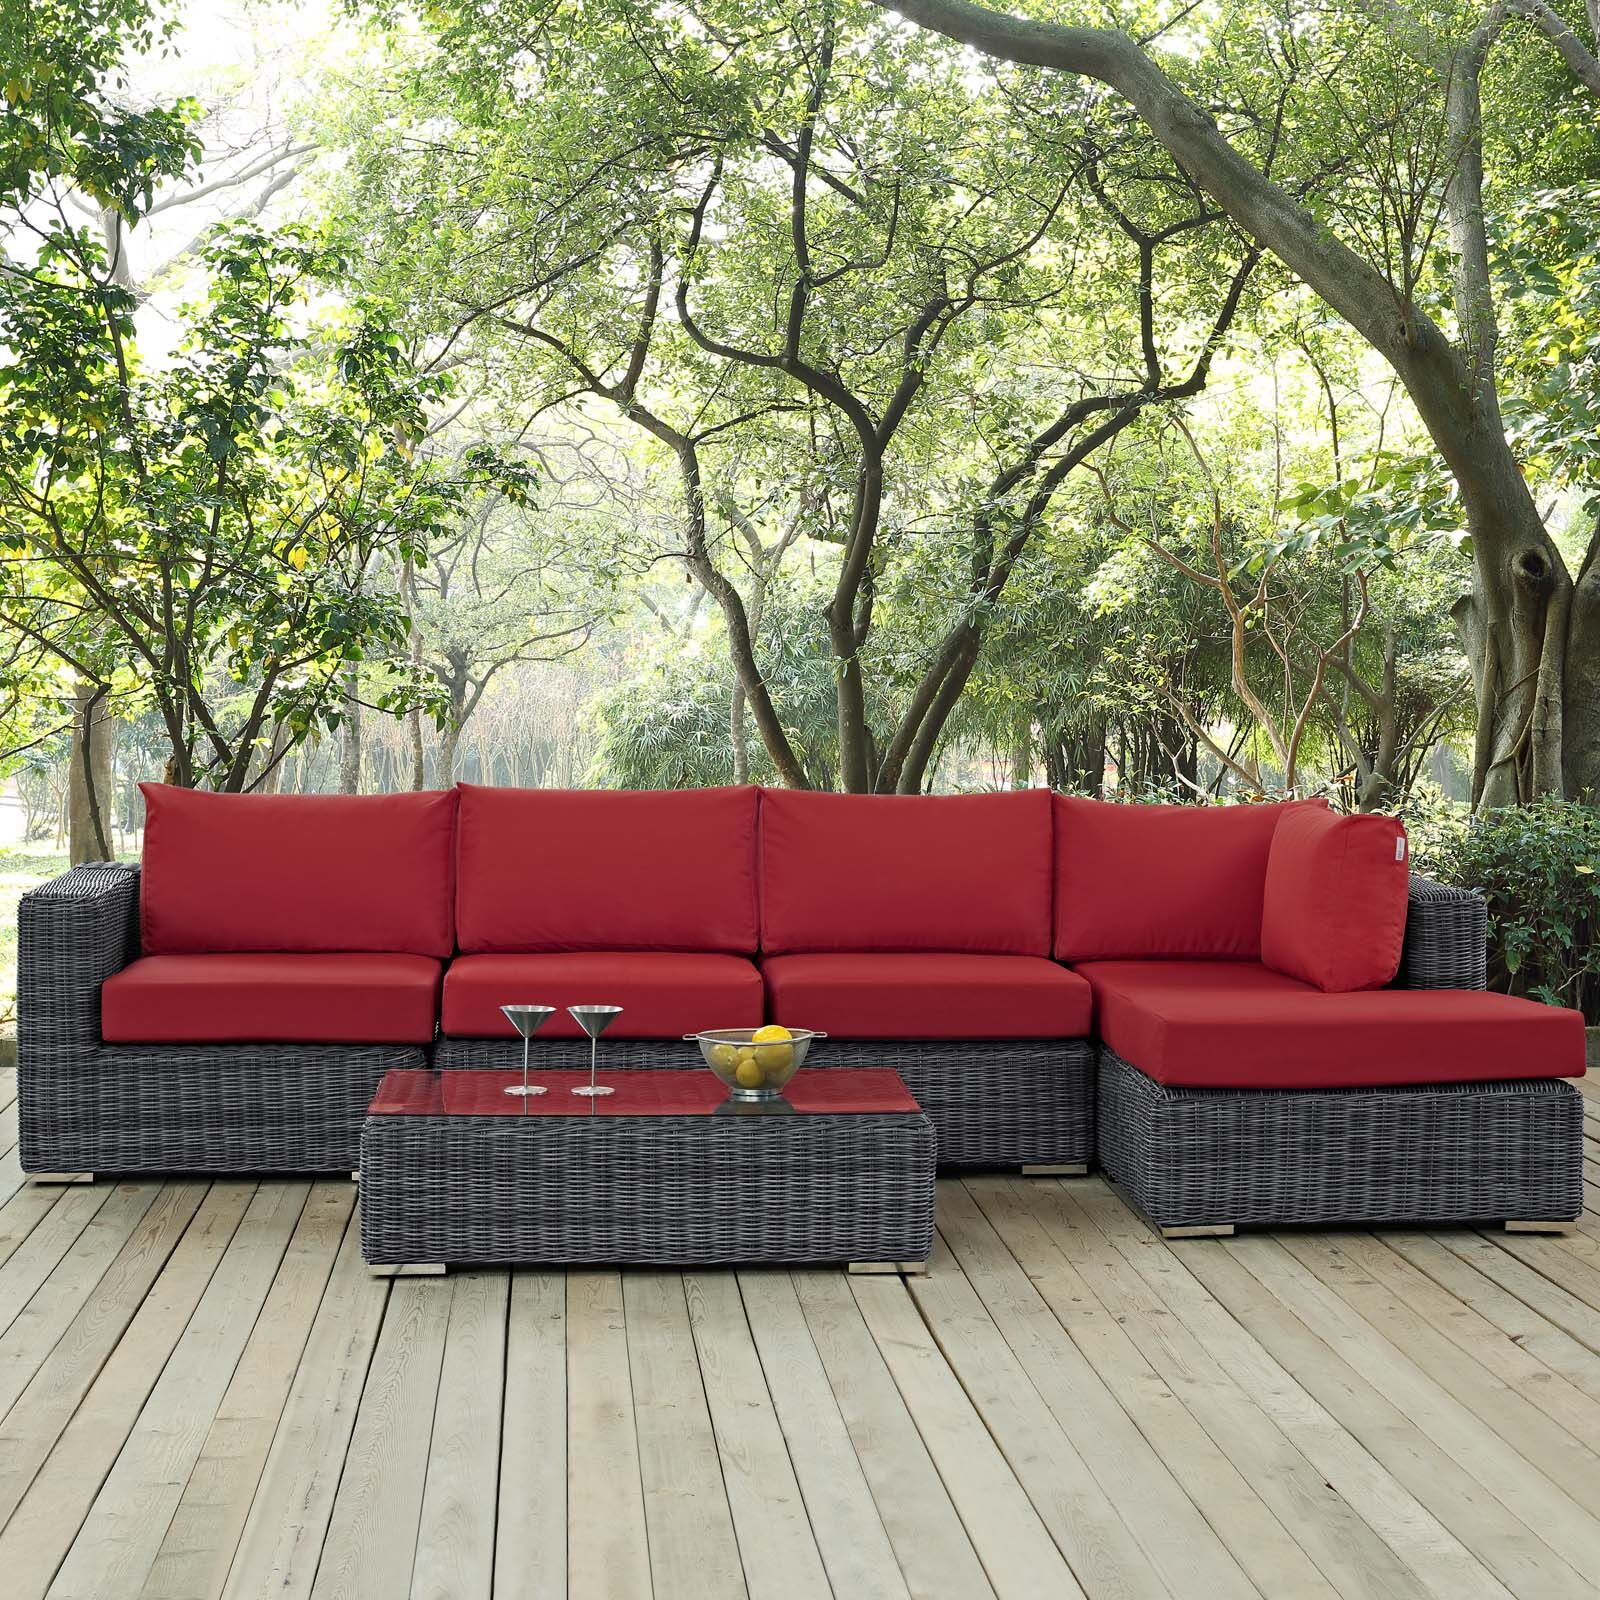 Alaia 5 Piece Rattan Sunbrella Sectional Seating Group with Cushions Cushion Color: Red